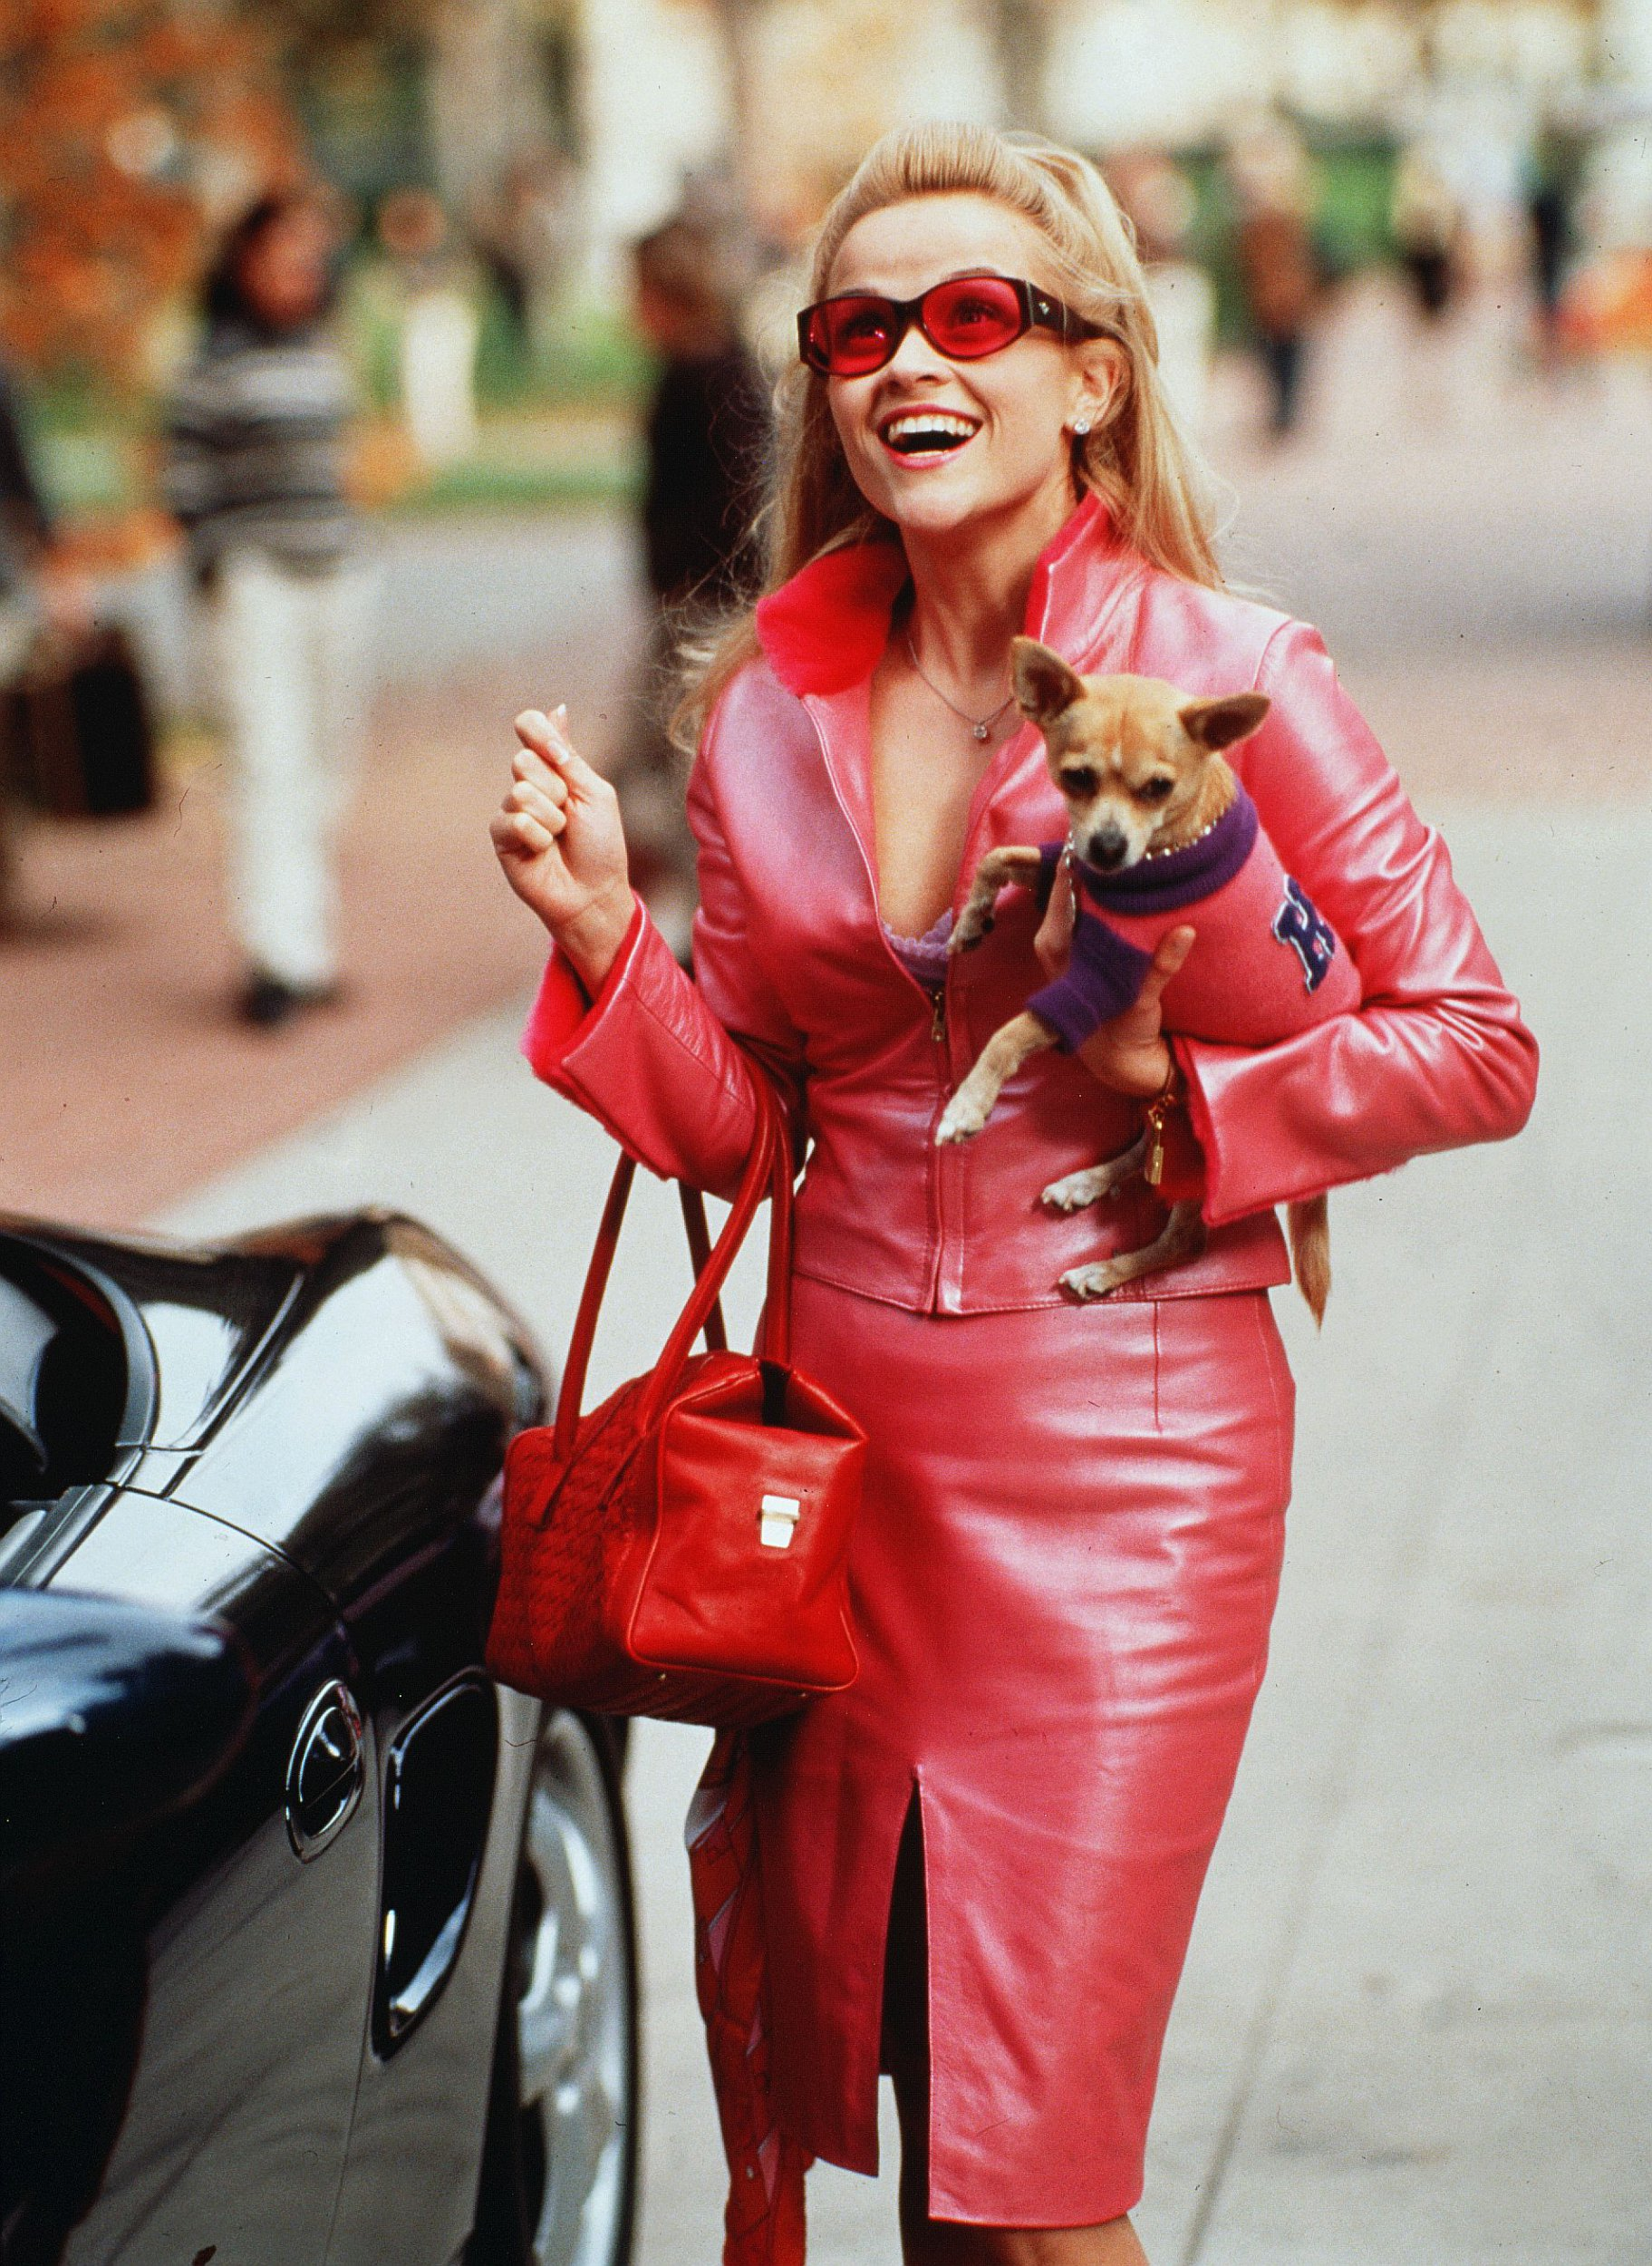 Reese Witherspoon teases 'fun' Legally Blonde 3 plot details and cast for sequel